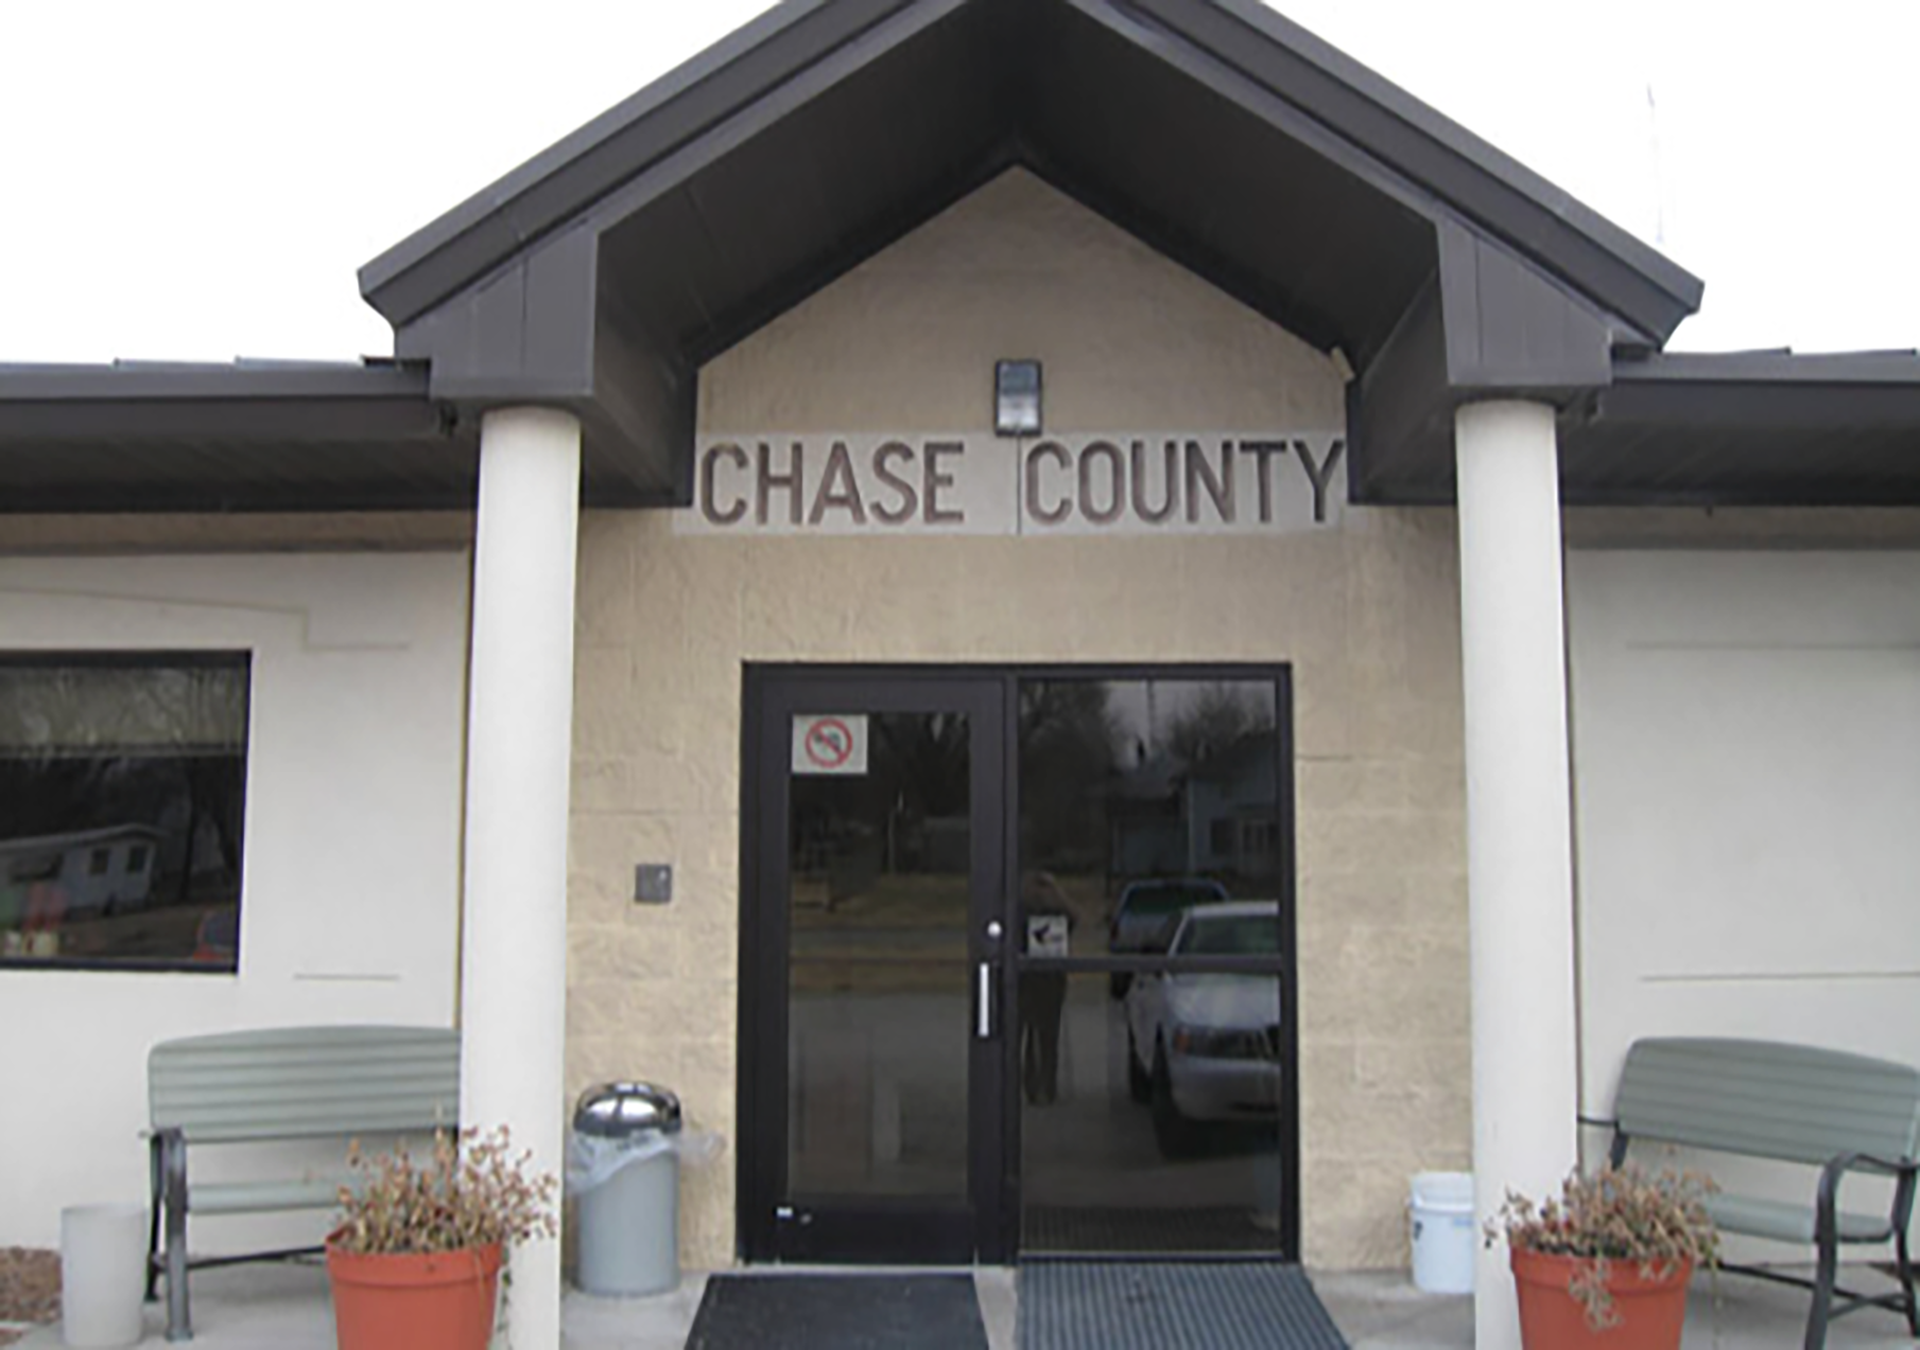 Chase County ICE facility outbreak highlights concerns over detainee overcrowding